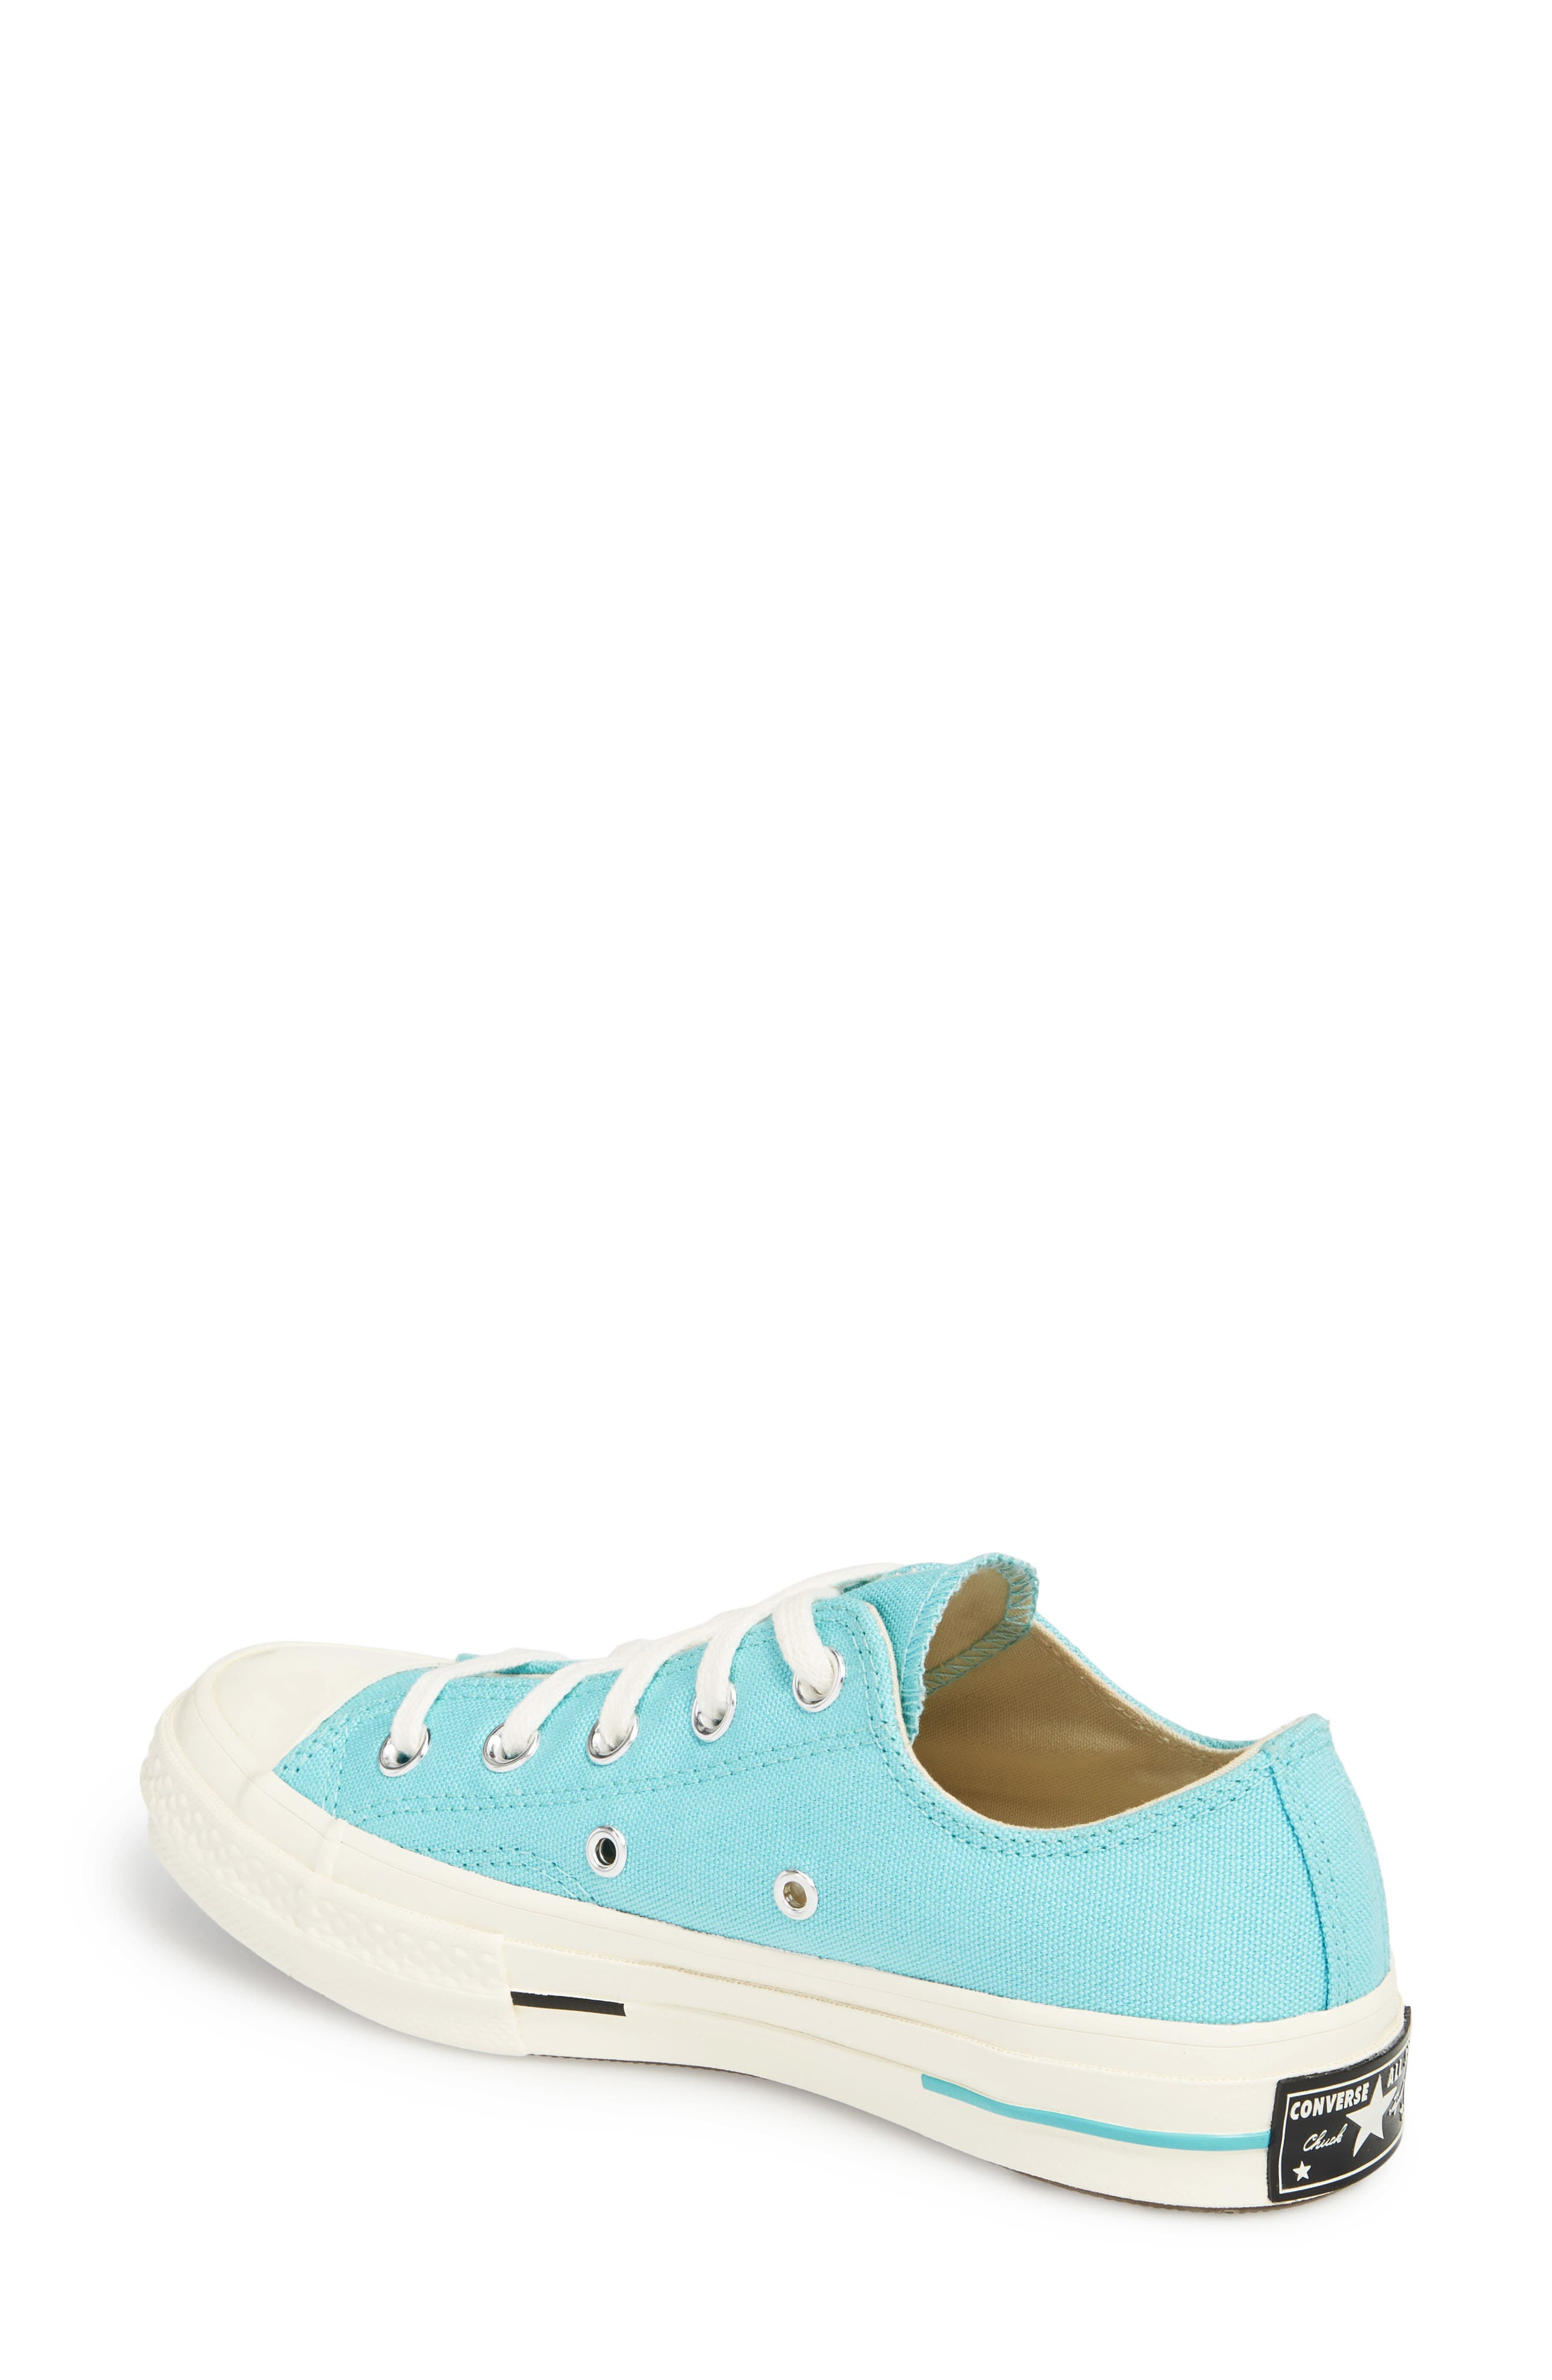 Chuck Taylor<sup>®</sup> All Star<sup>®</sup> '70s Brights Low Top Sneaker,                             Alternate thumbnail 2, color,                             Bleached Aqua